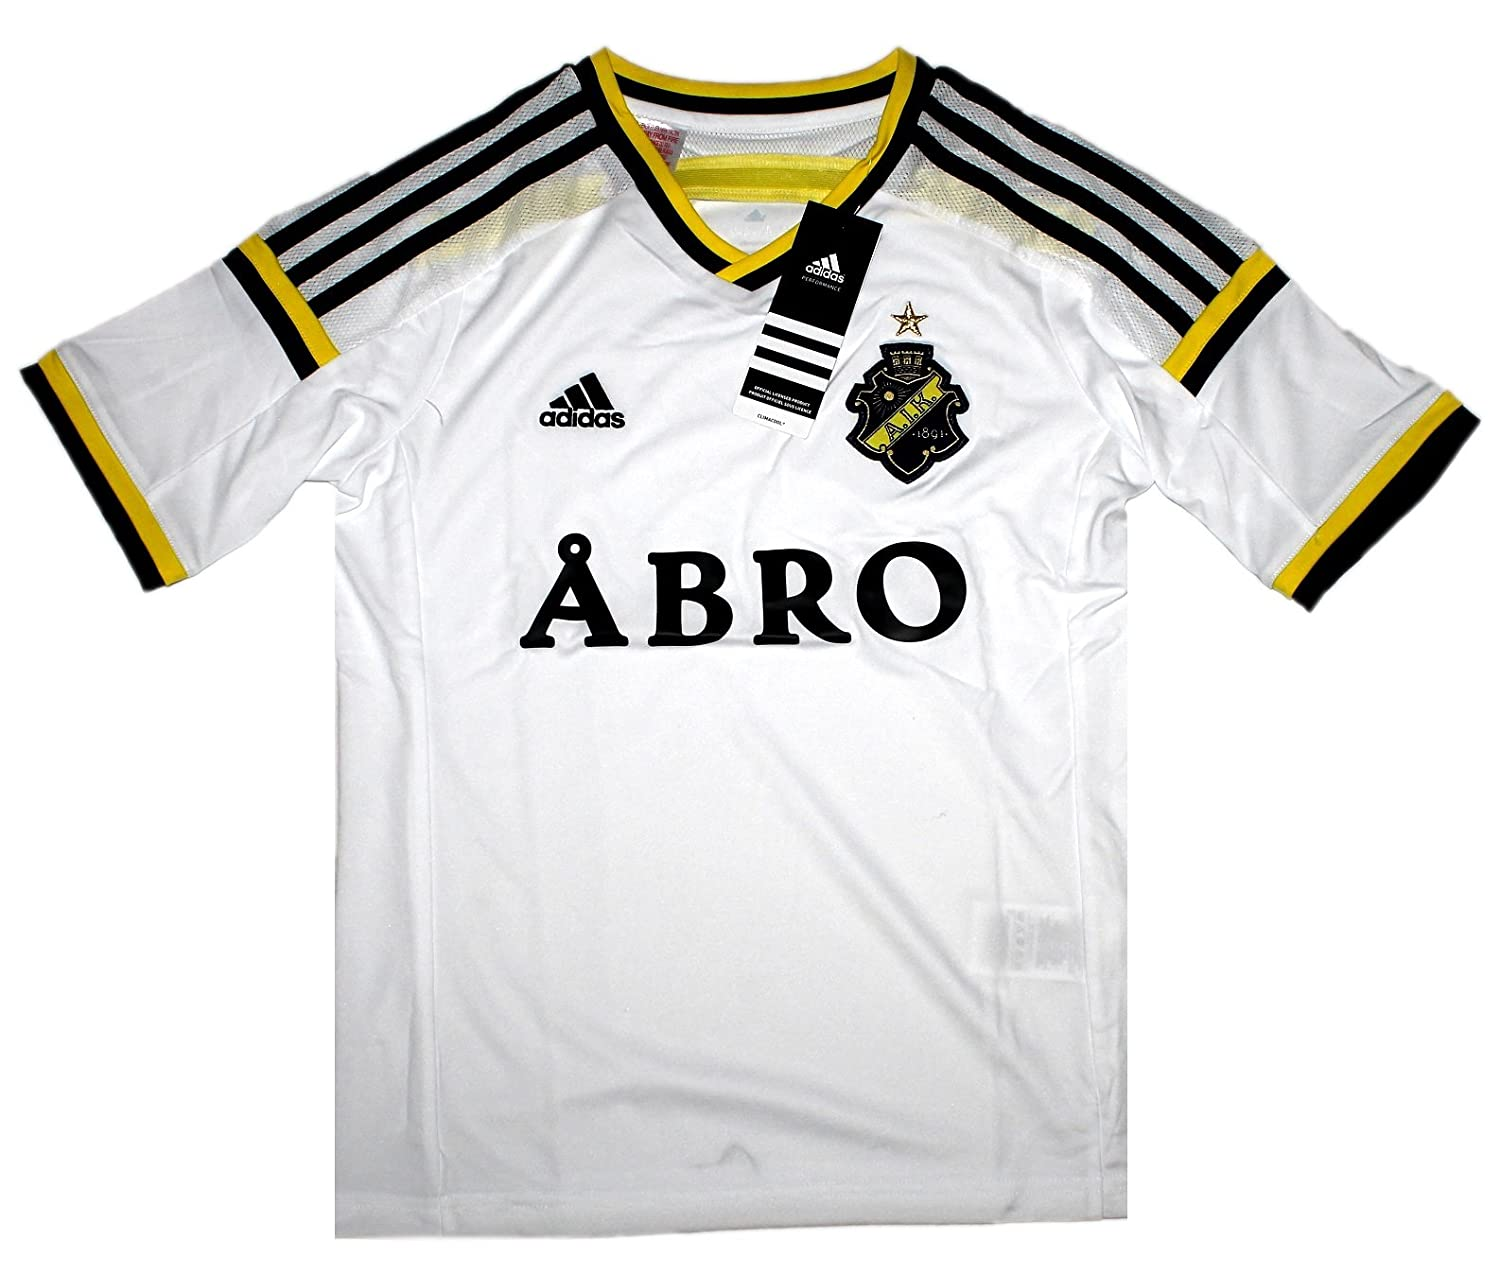 00f471db63a Adidas Children's Football Jersey AIK Solna A Jsy Y ClimaCool Jersey  Maillot Sweden Shirt D84862: Amazon.co.uk: Sports & Outdoors